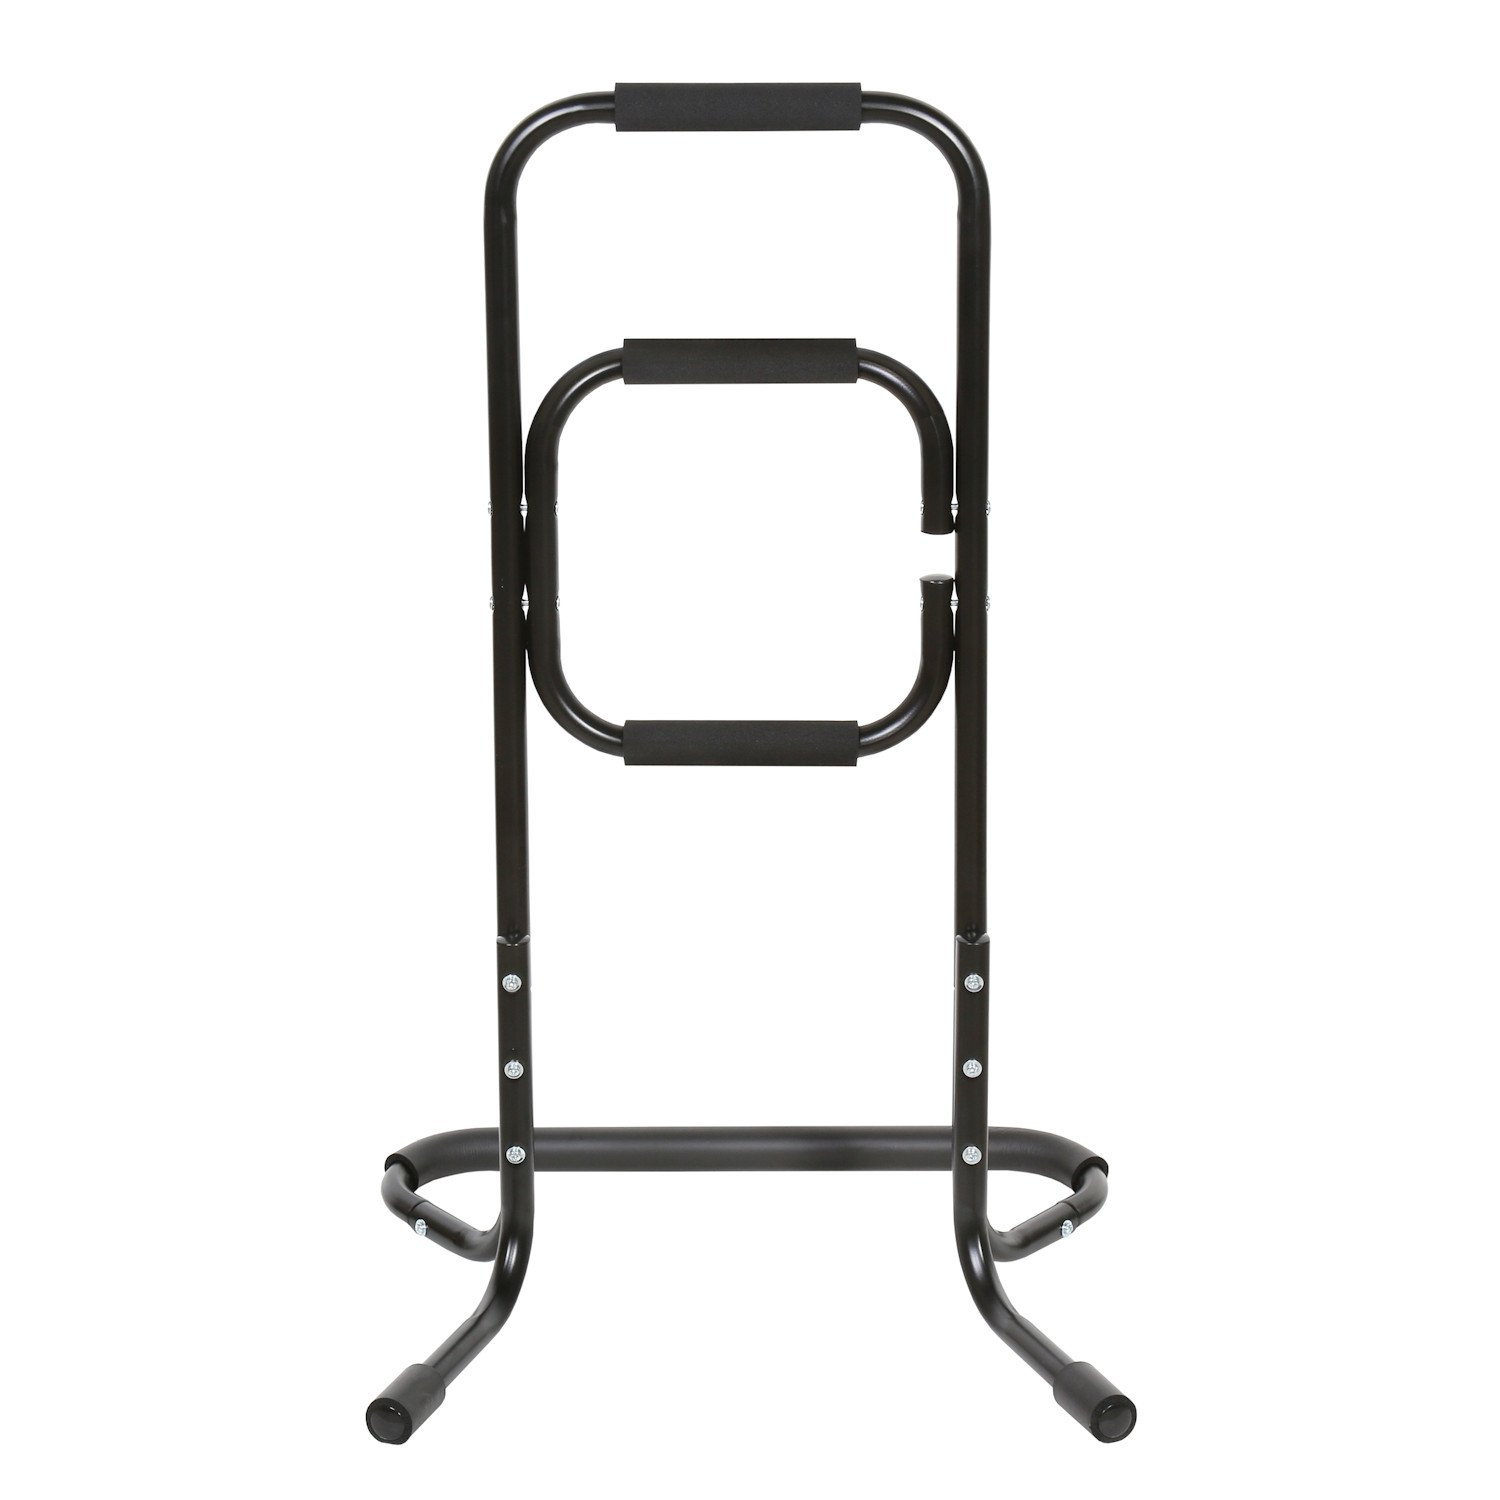 Portable Chair Assist - Helps Rise from Seated Position - Mobility Standing Aid